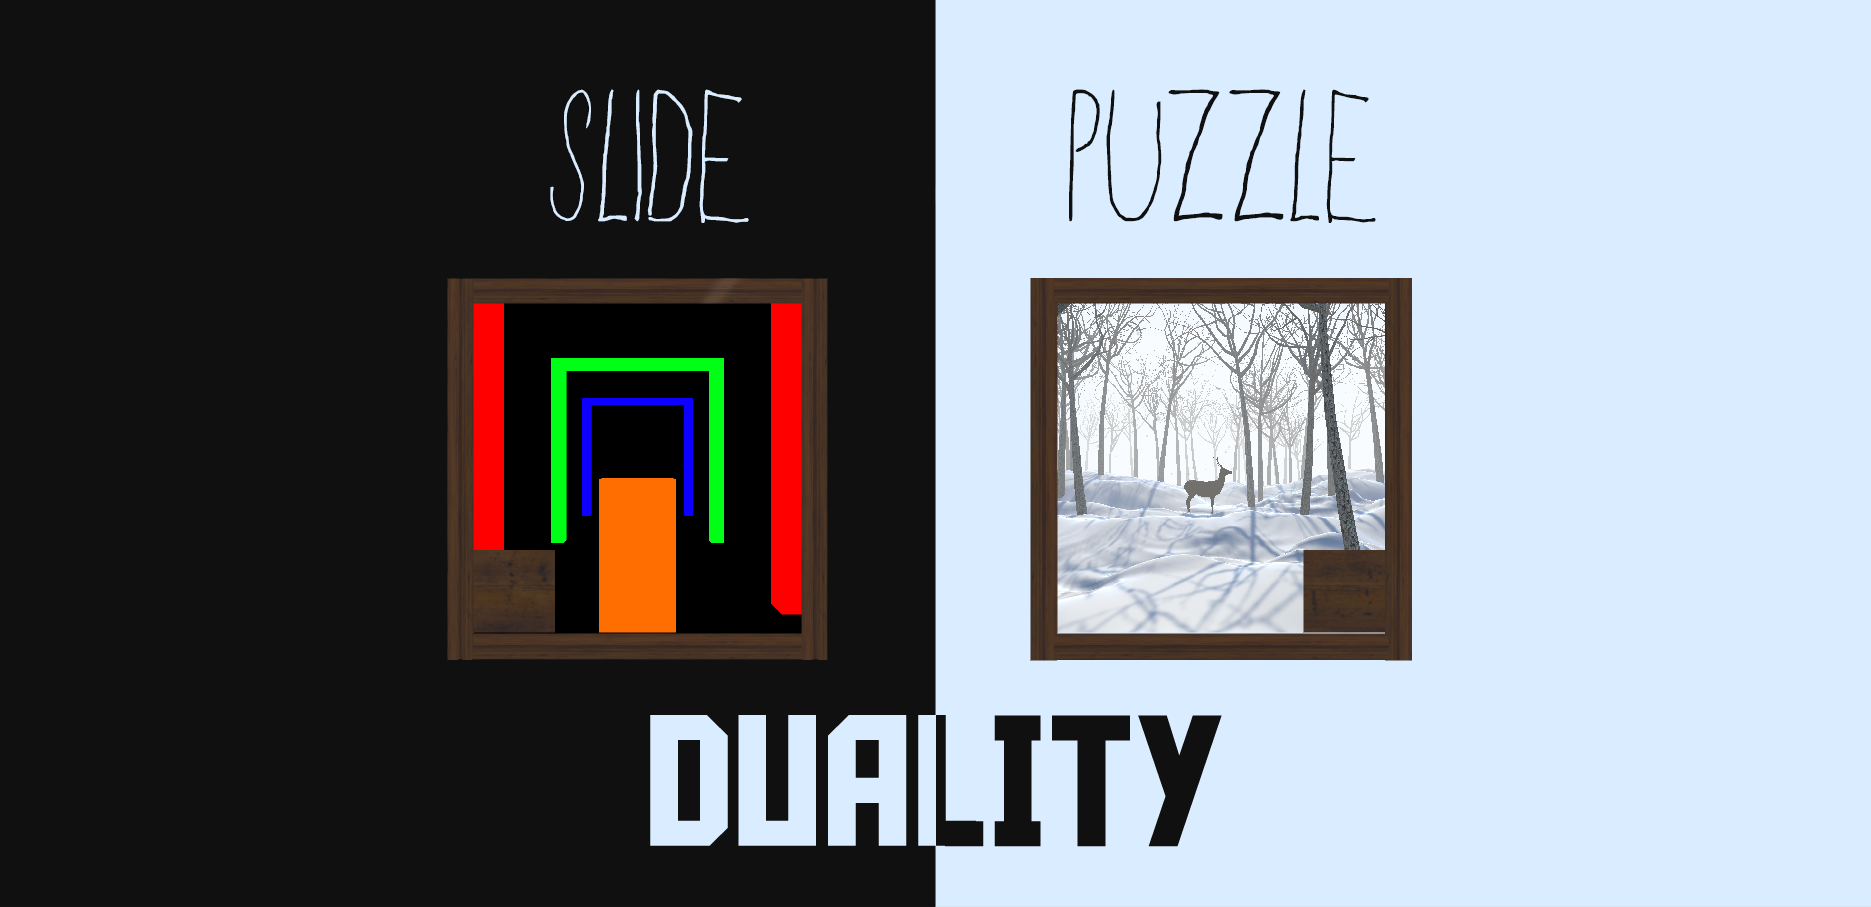 Slide Puzzle - Duality